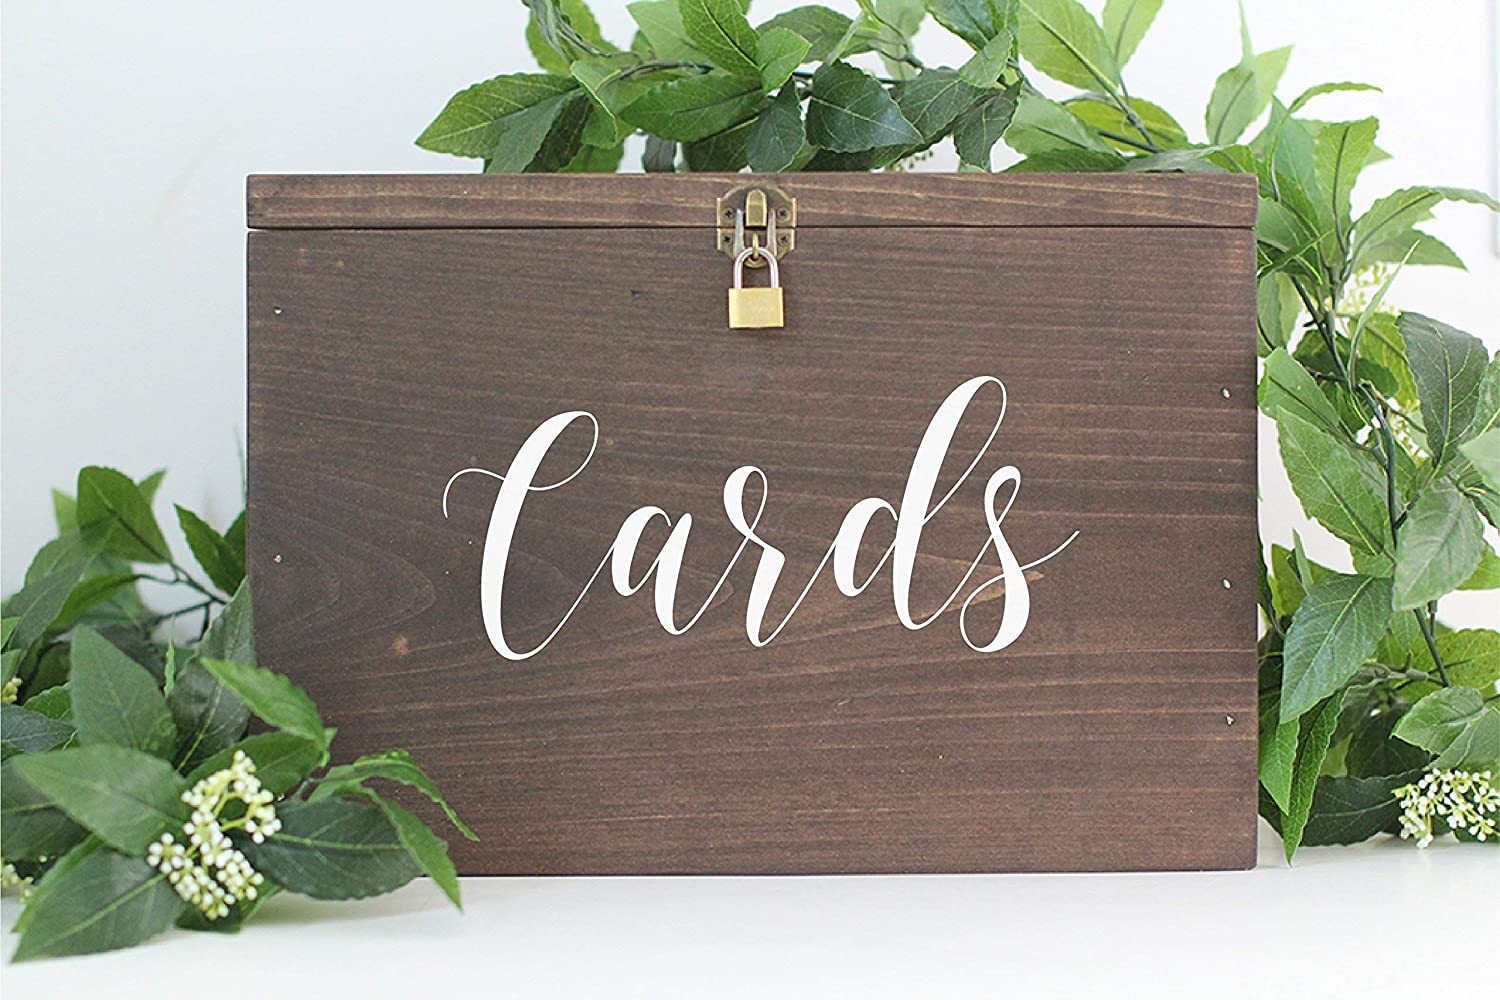 Rustic Wooden Card Box with Lock   Rustic Wedding Decor   Wedding Card Box   Rustic Wedding Card Box   Wedding Card Holder   Personalized Card Box